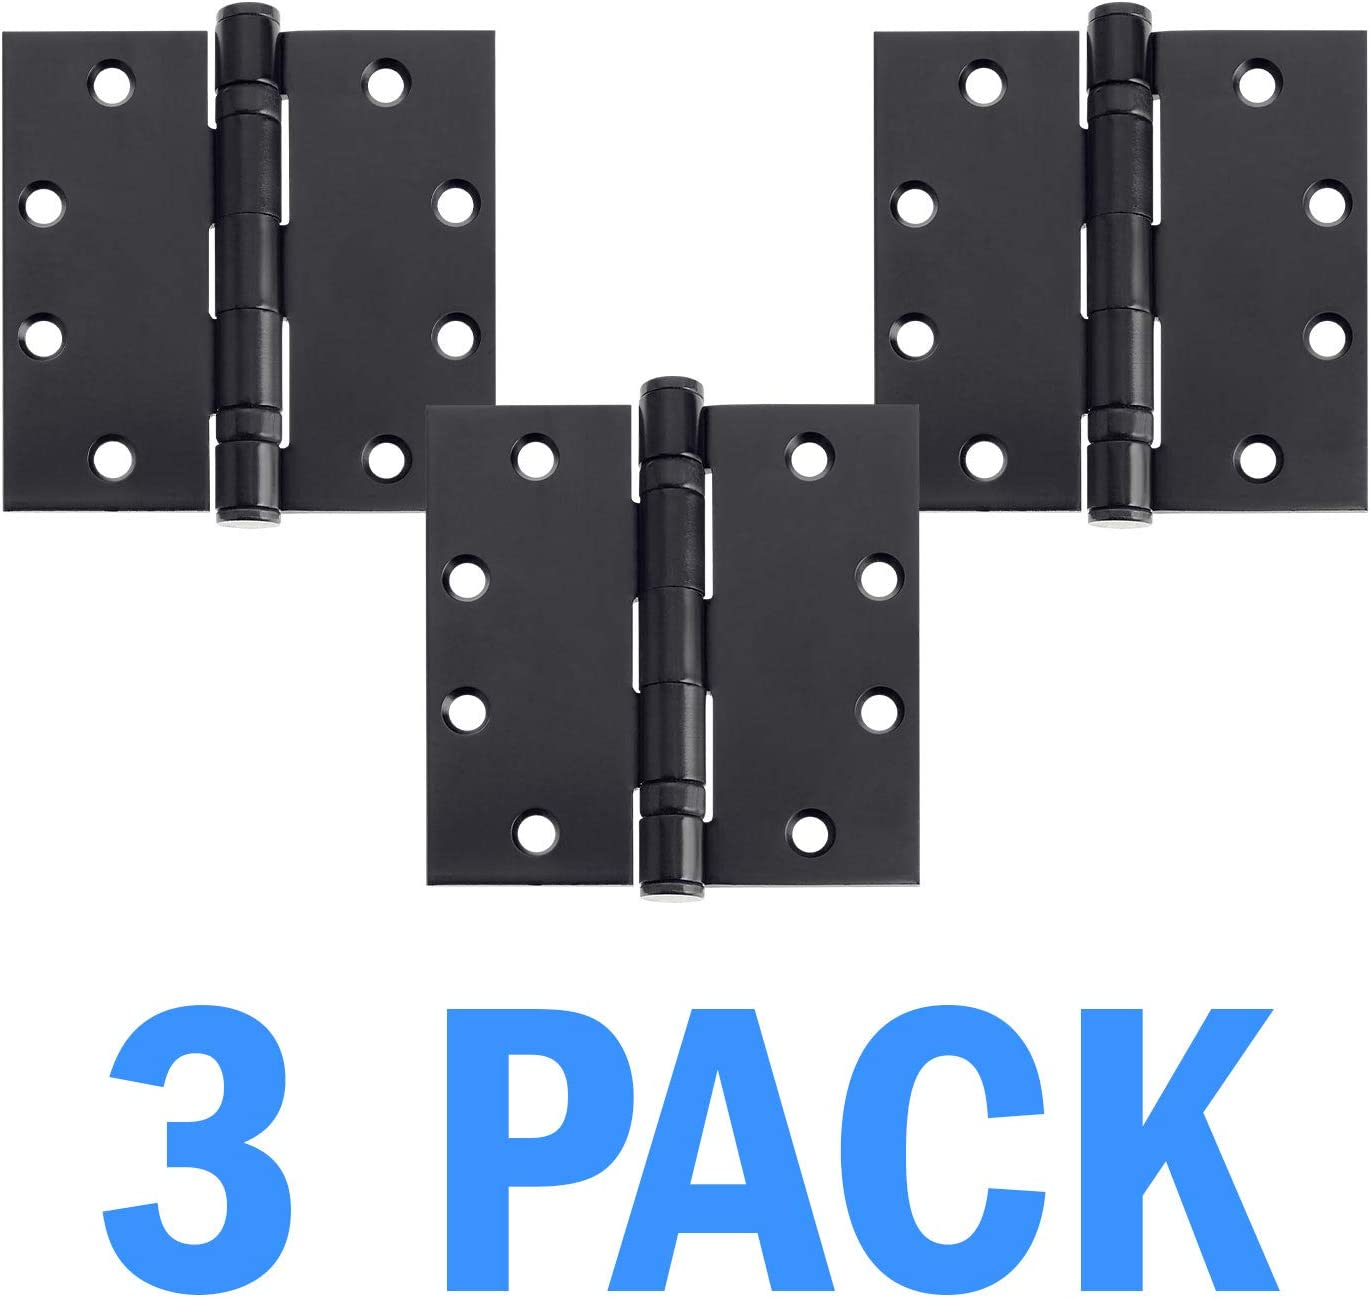 Nuk3y Commercial Grade Ball Bearing Pack Removable Pin Door Hinge 4-1//2 x 4-1//2-3 Oiled Rubbed Bronze